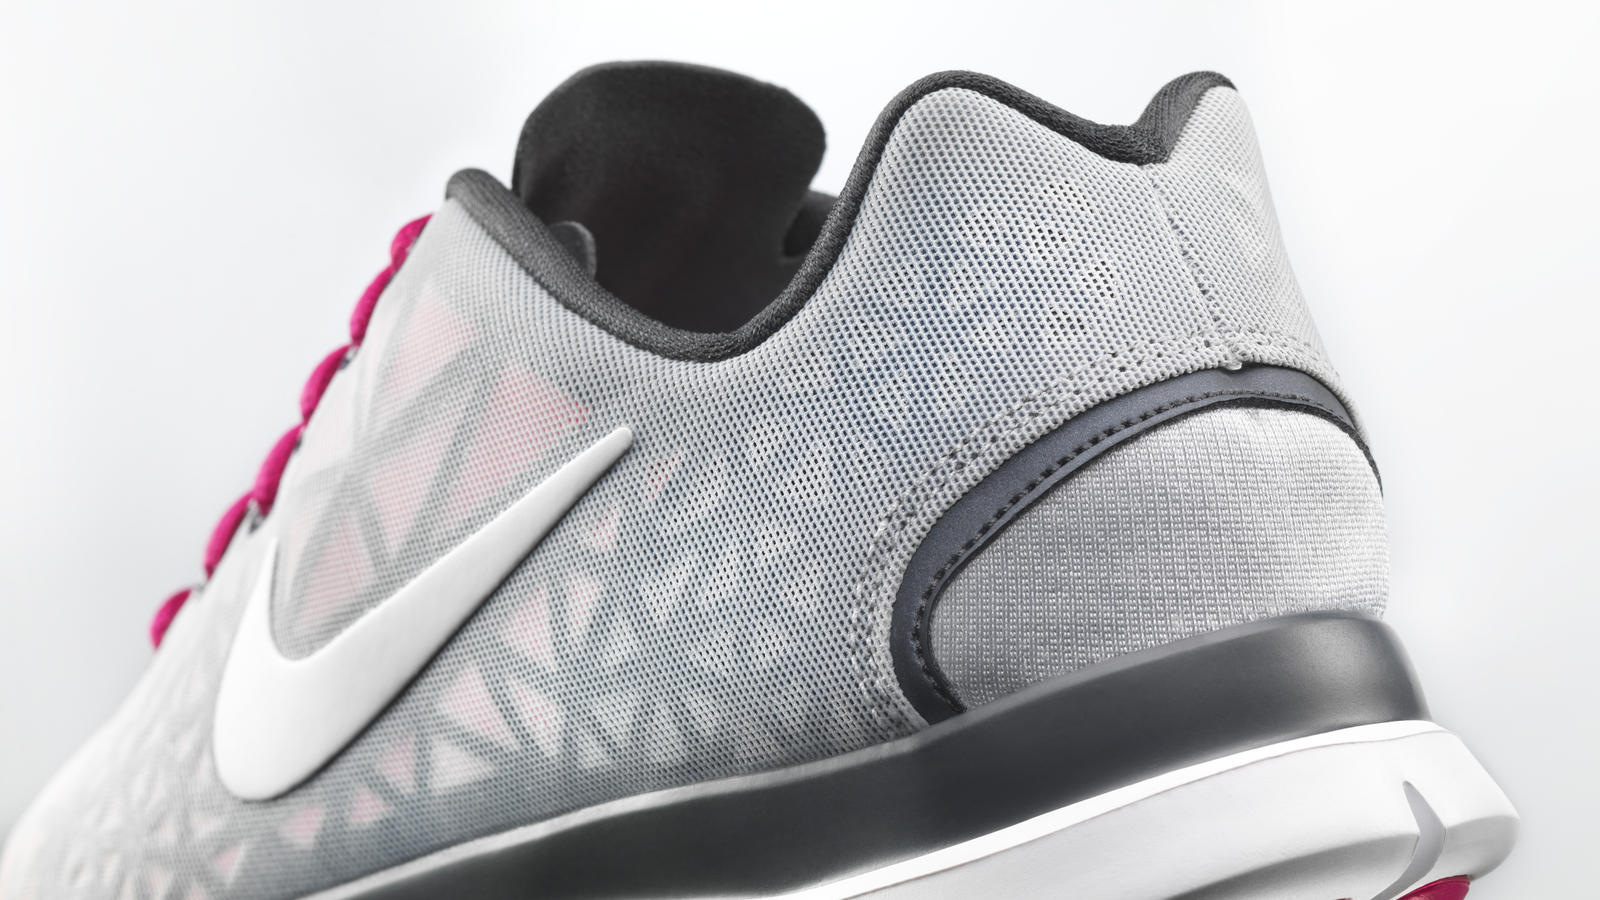 During a time of year when most give up their New Years resolutions, Nike  is helping women stick to their training goals with the all-new Nike Free  TR Fit ...